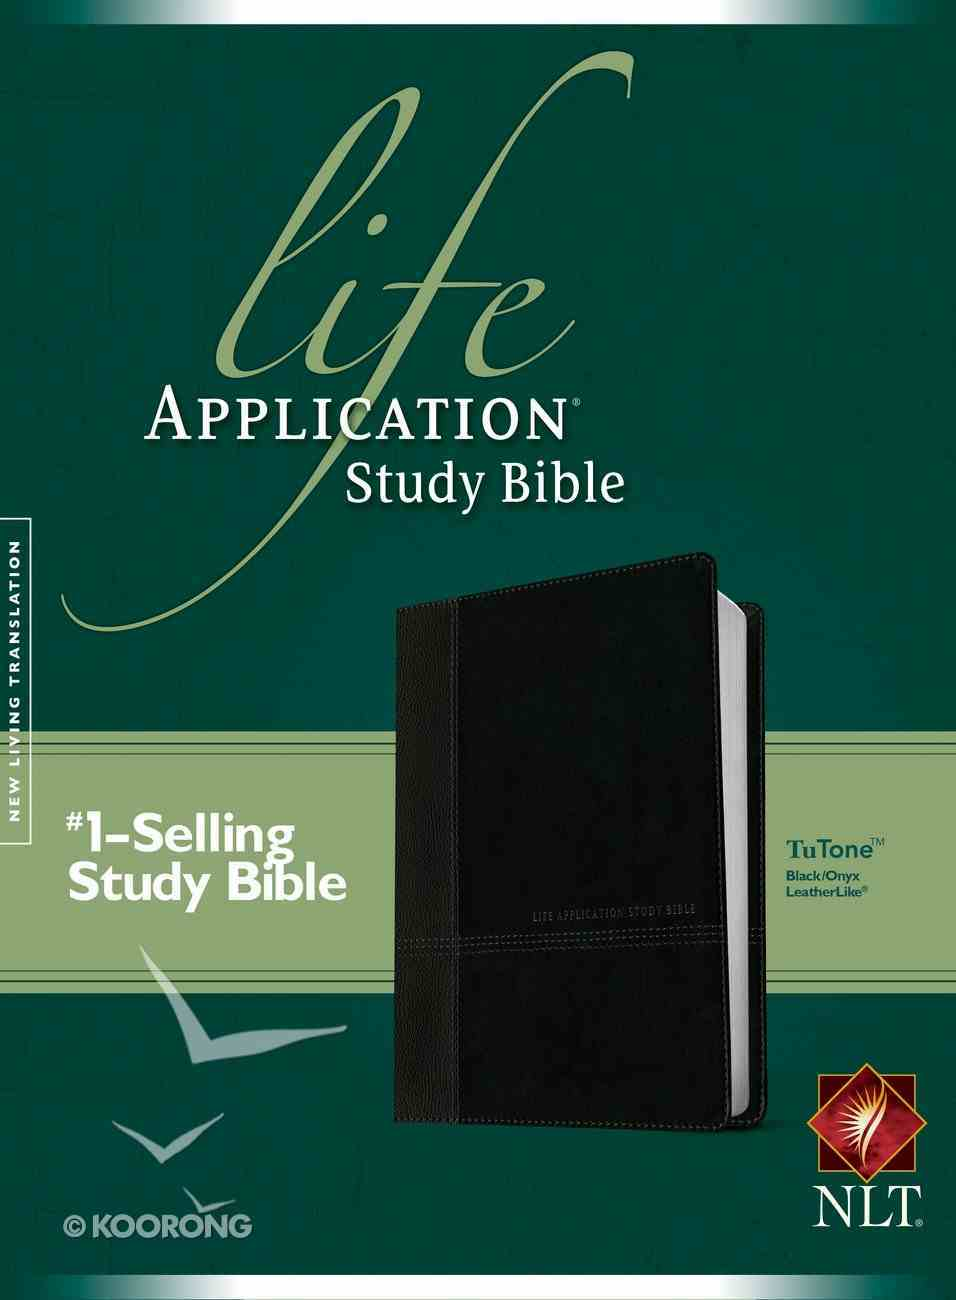 NLT Life Application Study Bible Black/Onyx (Red Letter Edition) Imitation Leather